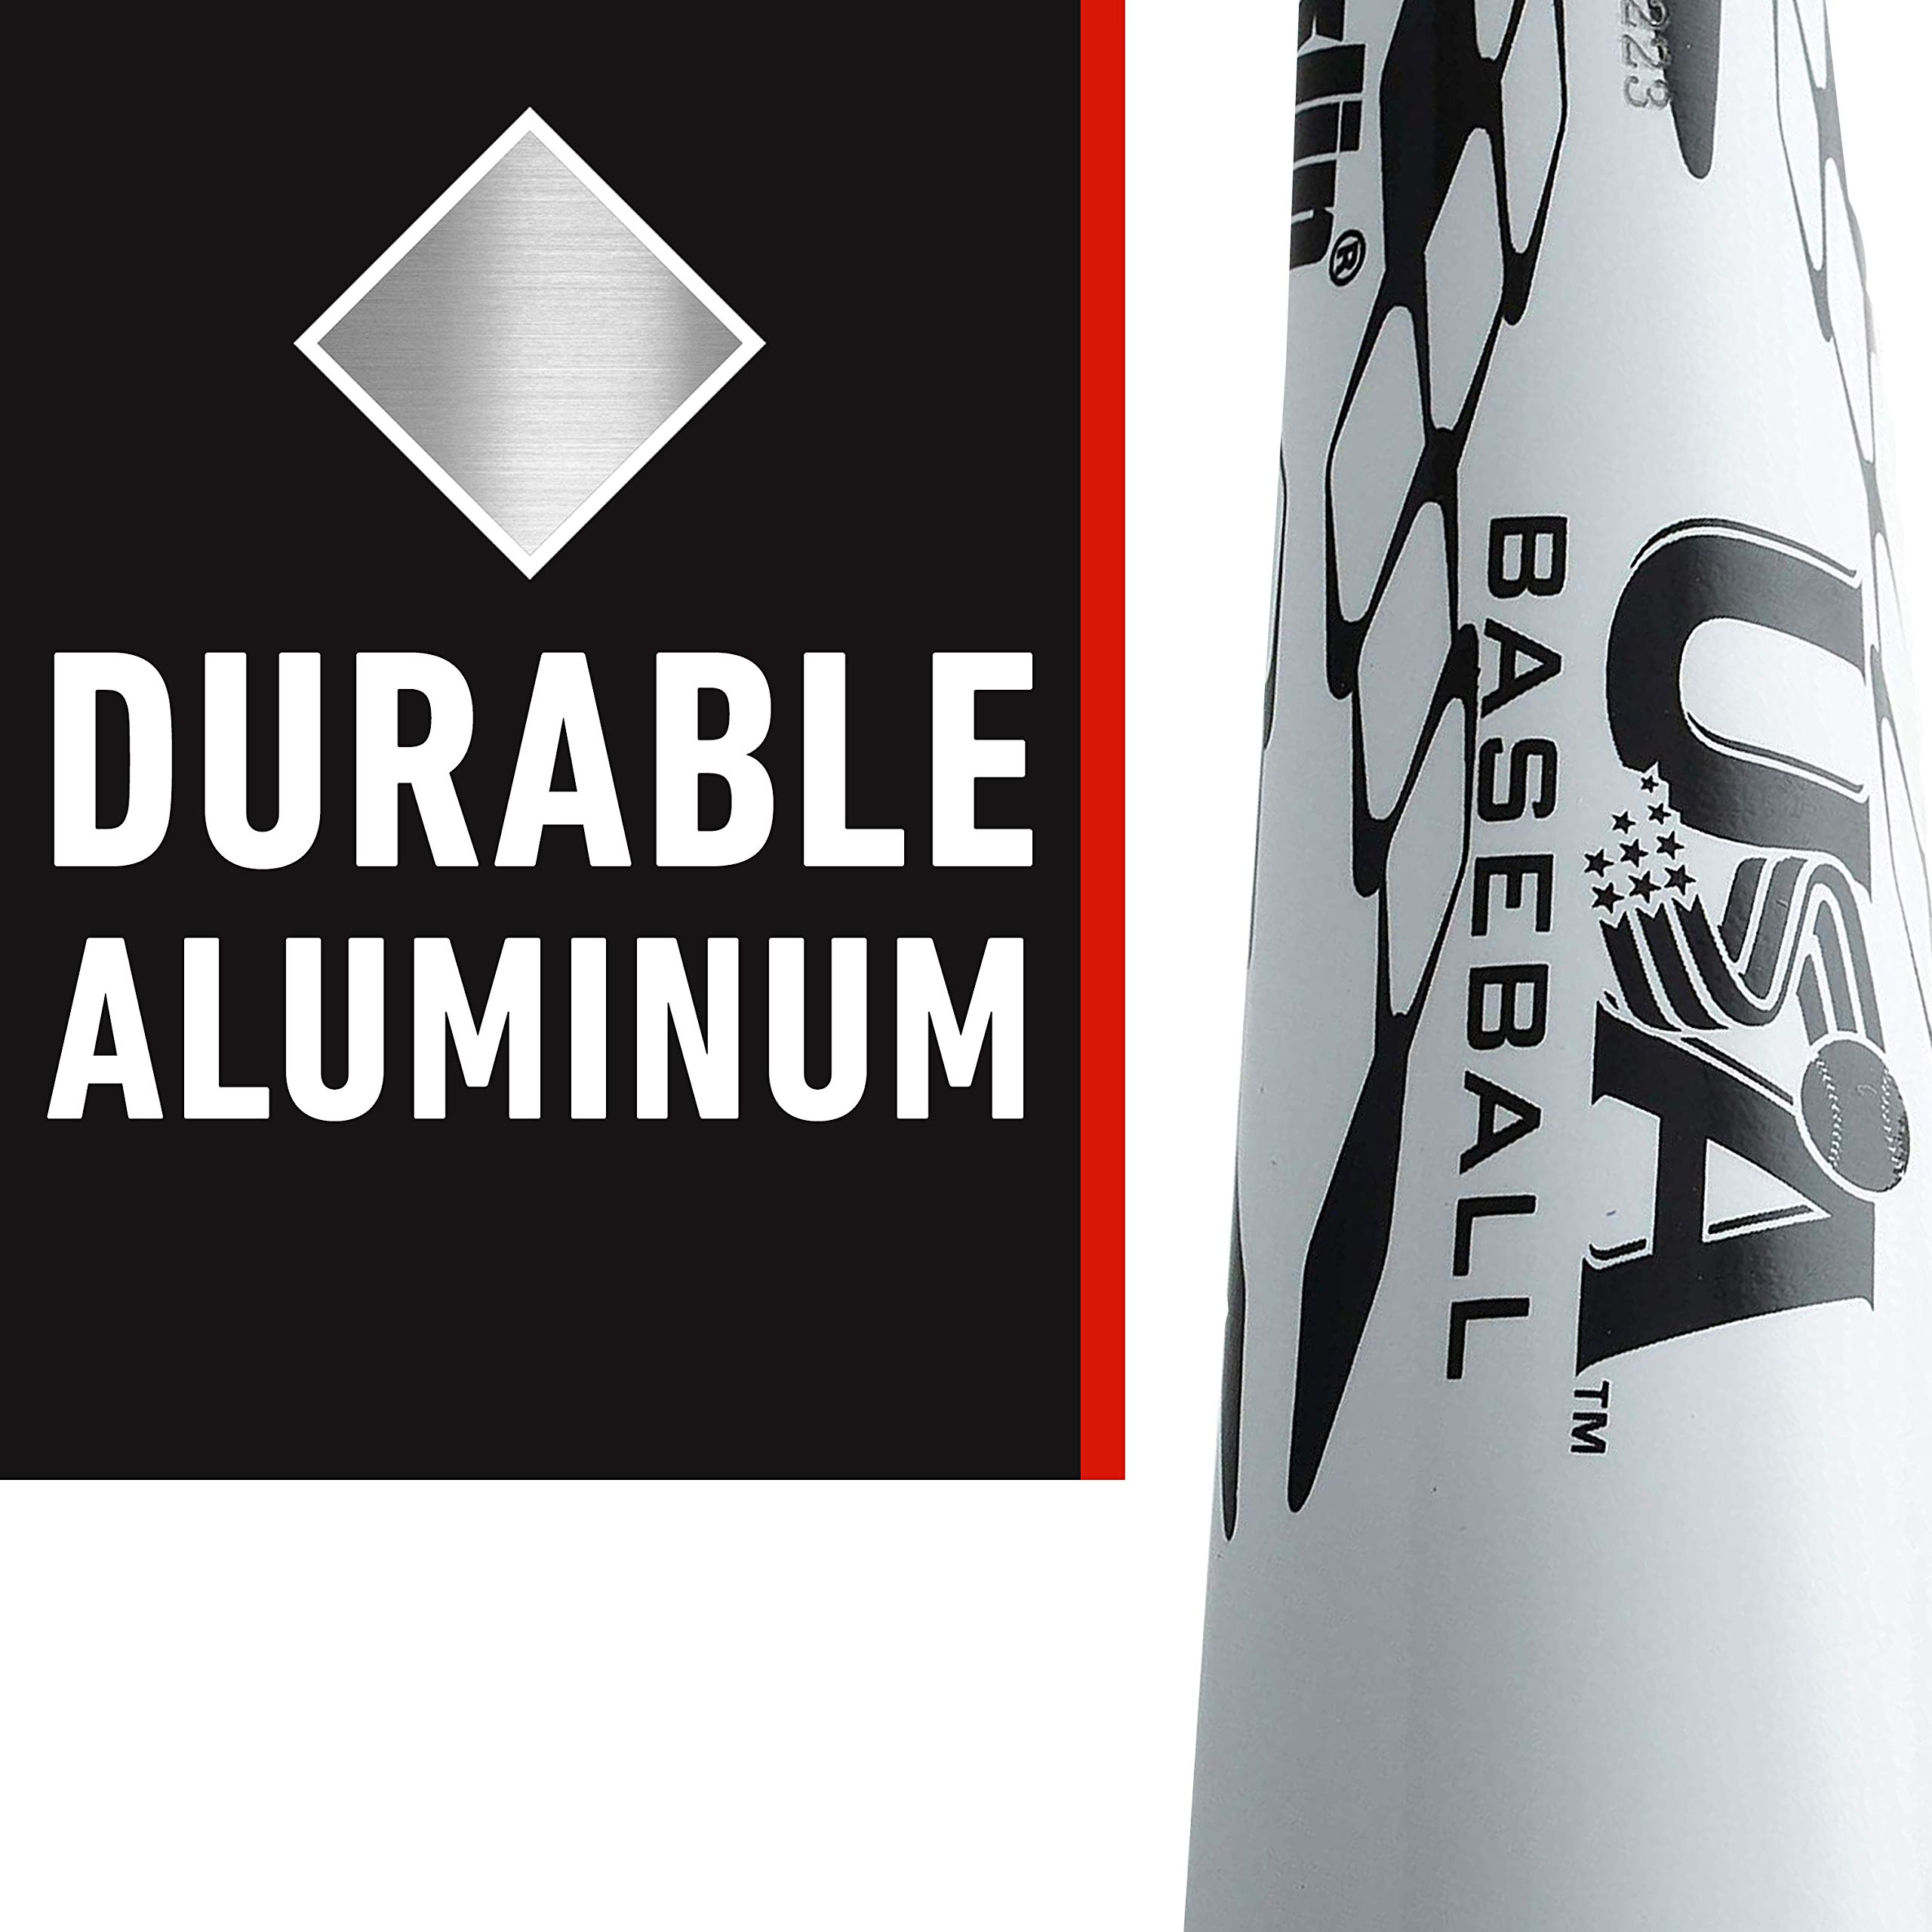 Franklin Sports Venom 1000 Official Teeball Bat Perfect for Soft Core Tee Balls, 25''/13 oz by Franklin Sports (Image #4)